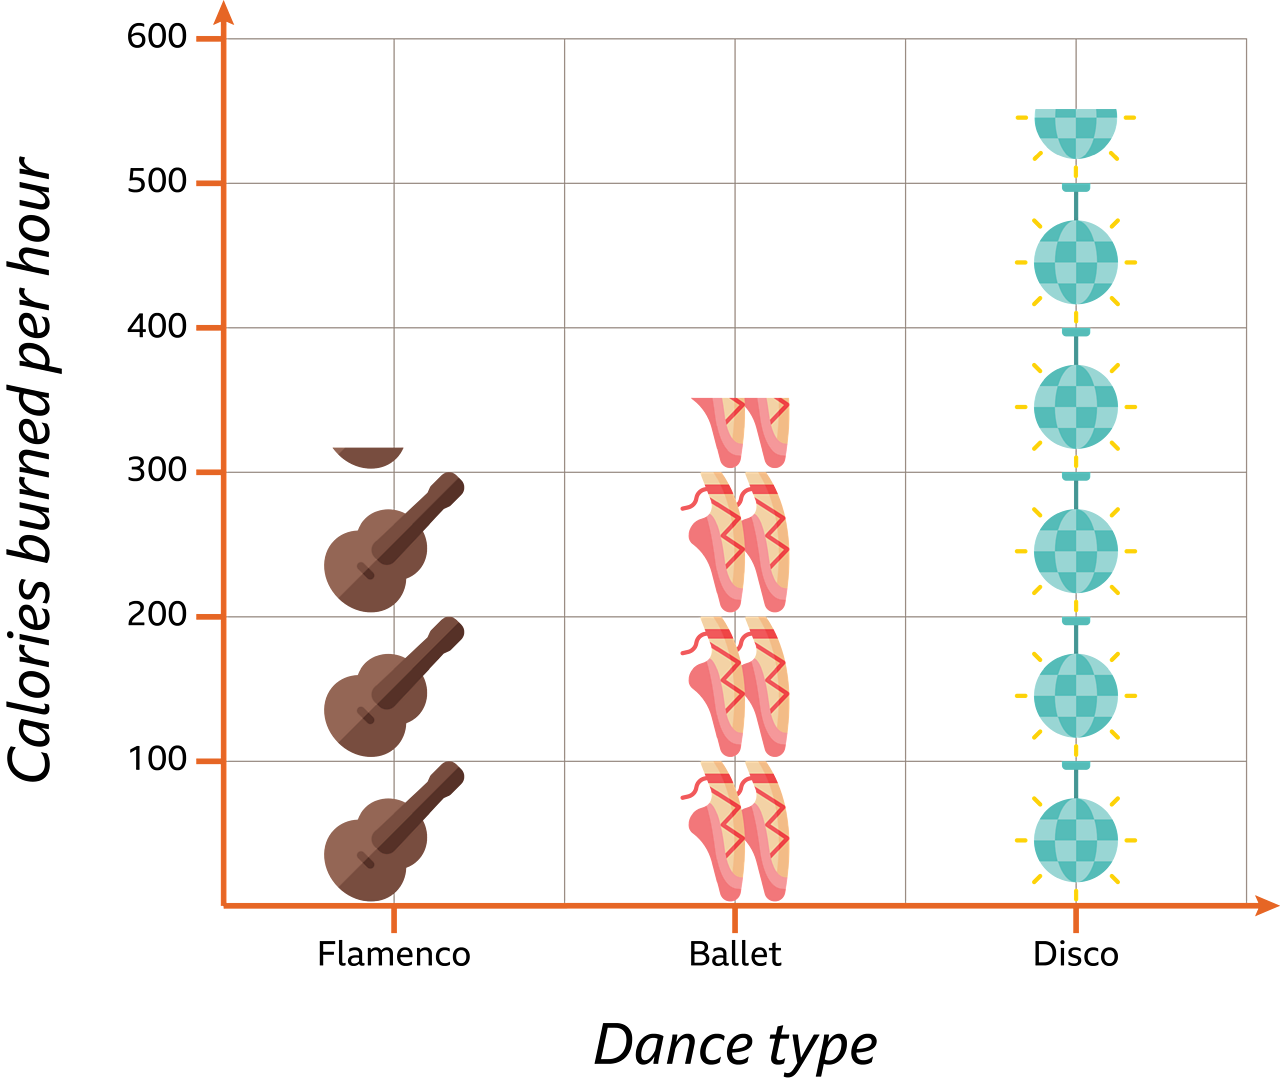 A graph showing how many calories you burn doing different types of dance